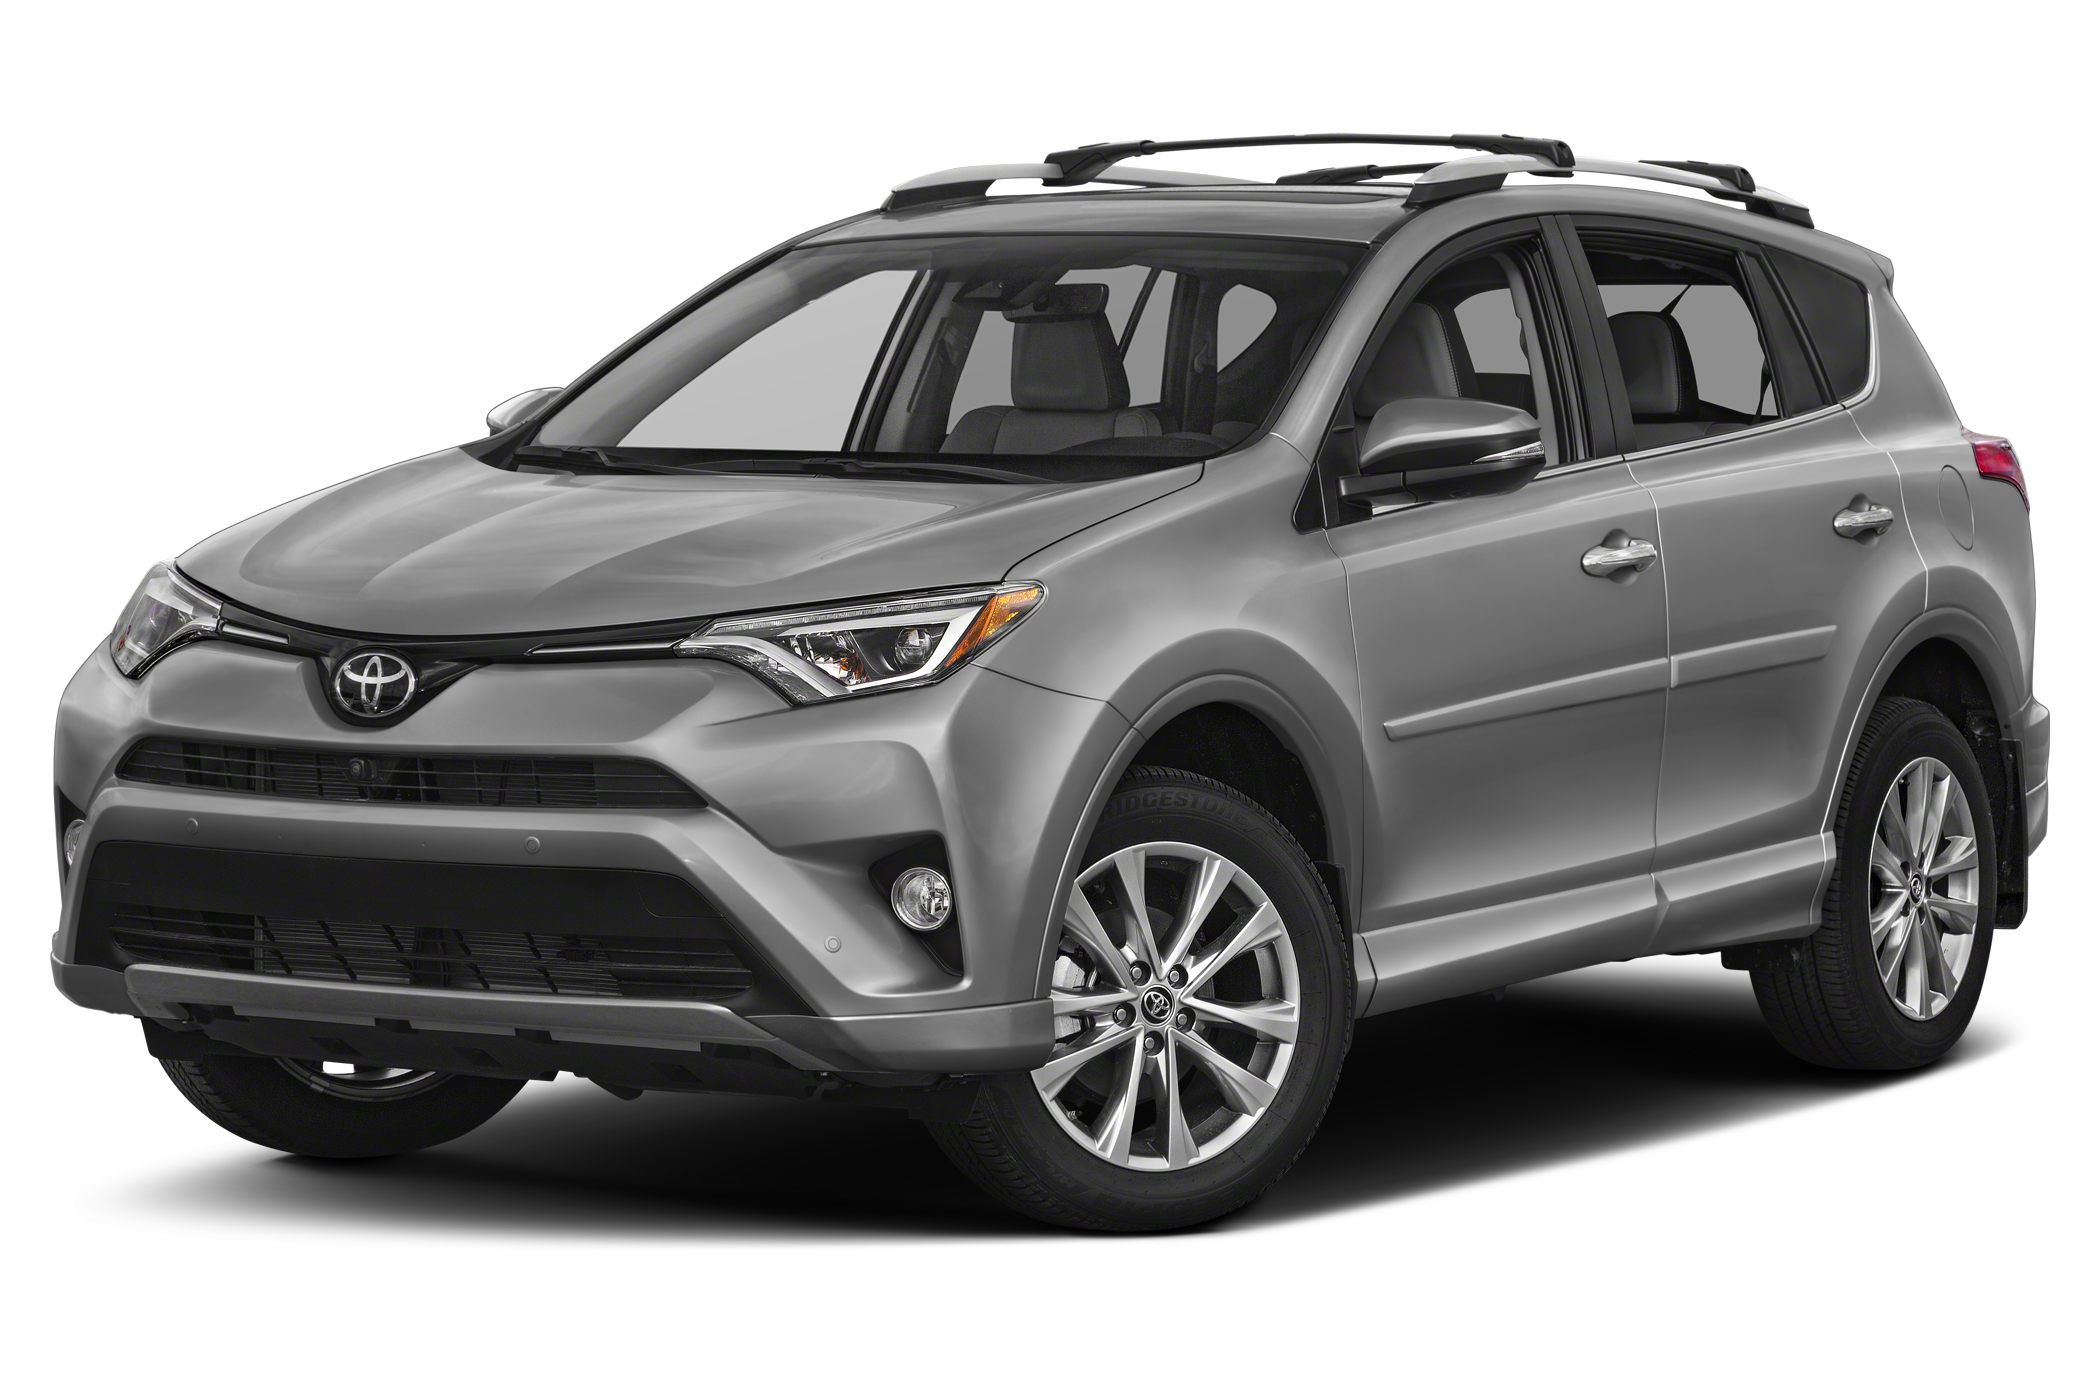 2017 Toyota RAV4 Platinum 4dr All wheel Drive Pricing and Options